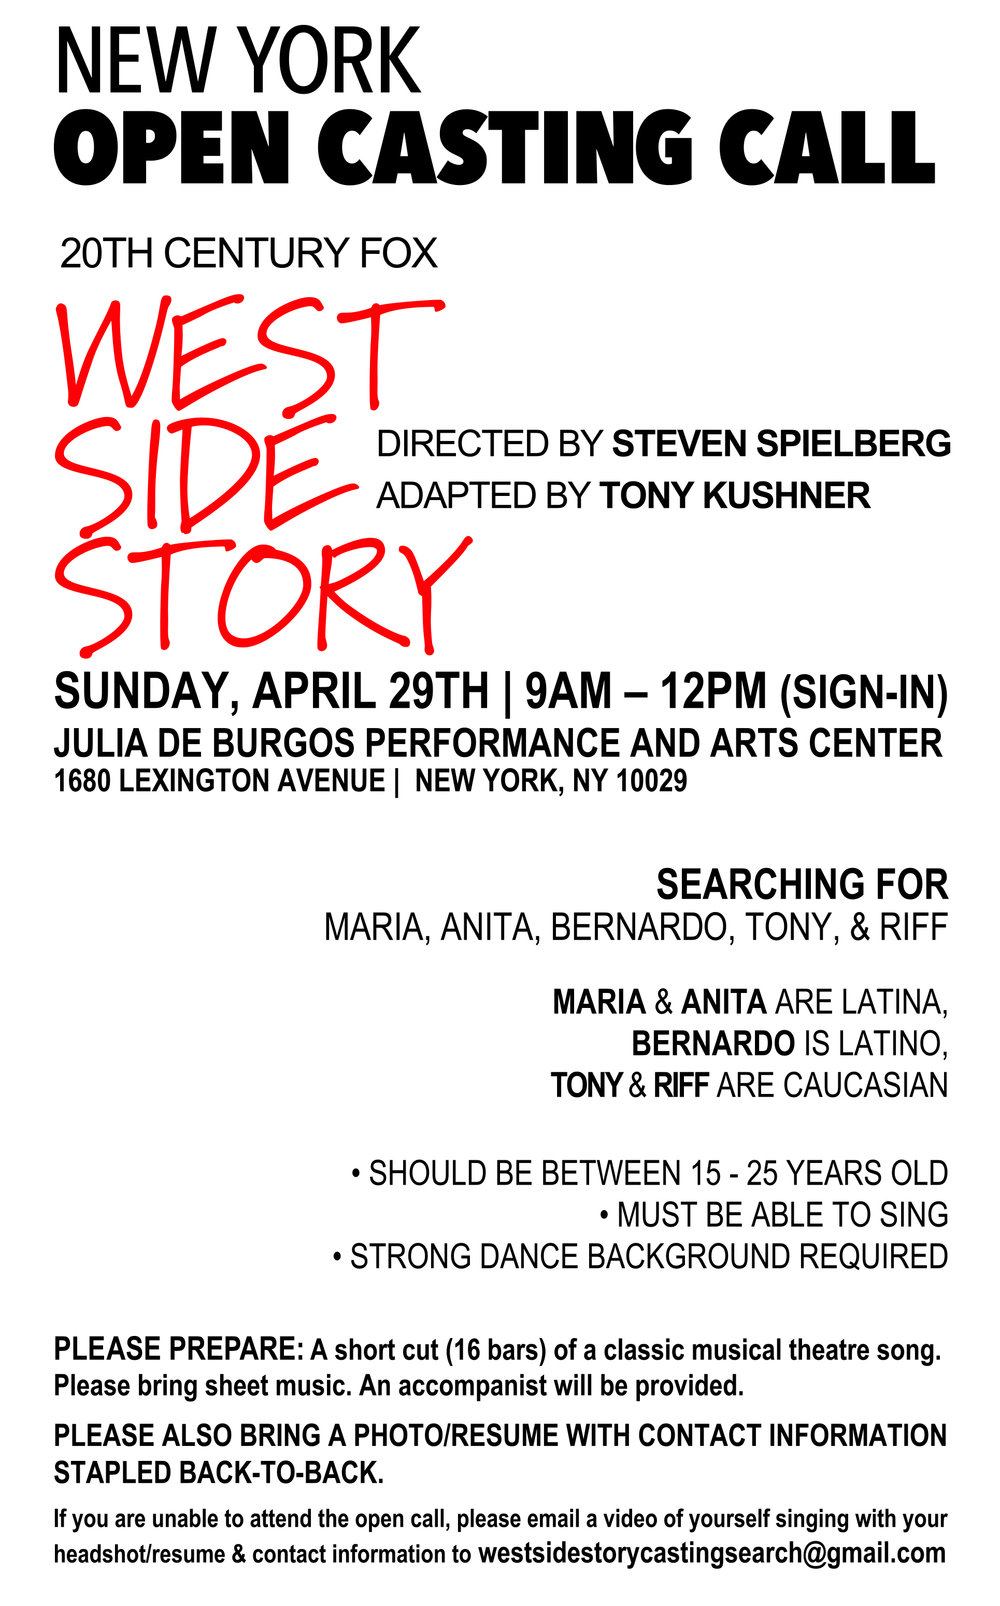 WSS NY OPEN CALL FLYER 6.jpg